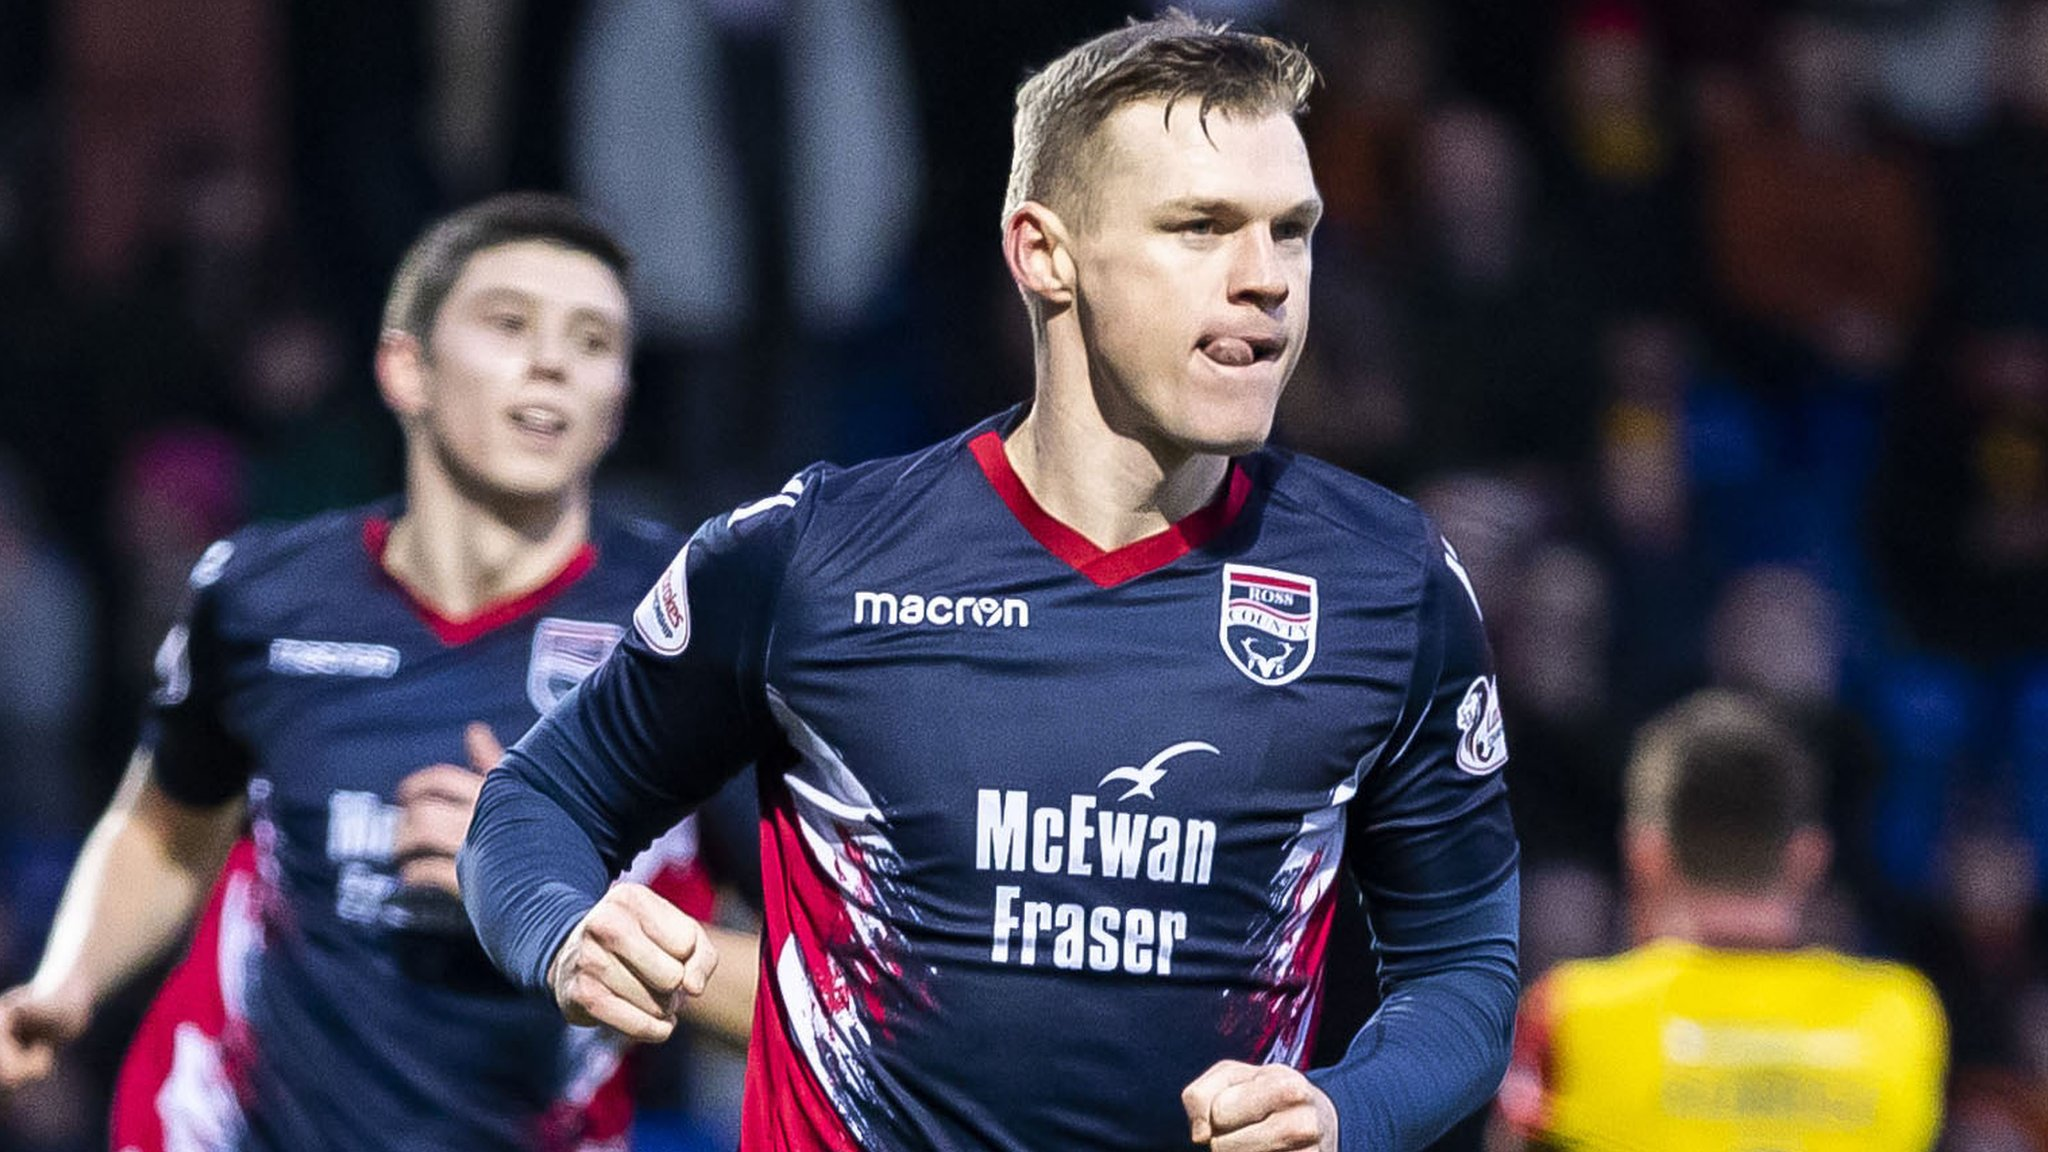 Ross County 2-0 Partick Thistle: Dingwall side go top of Championship